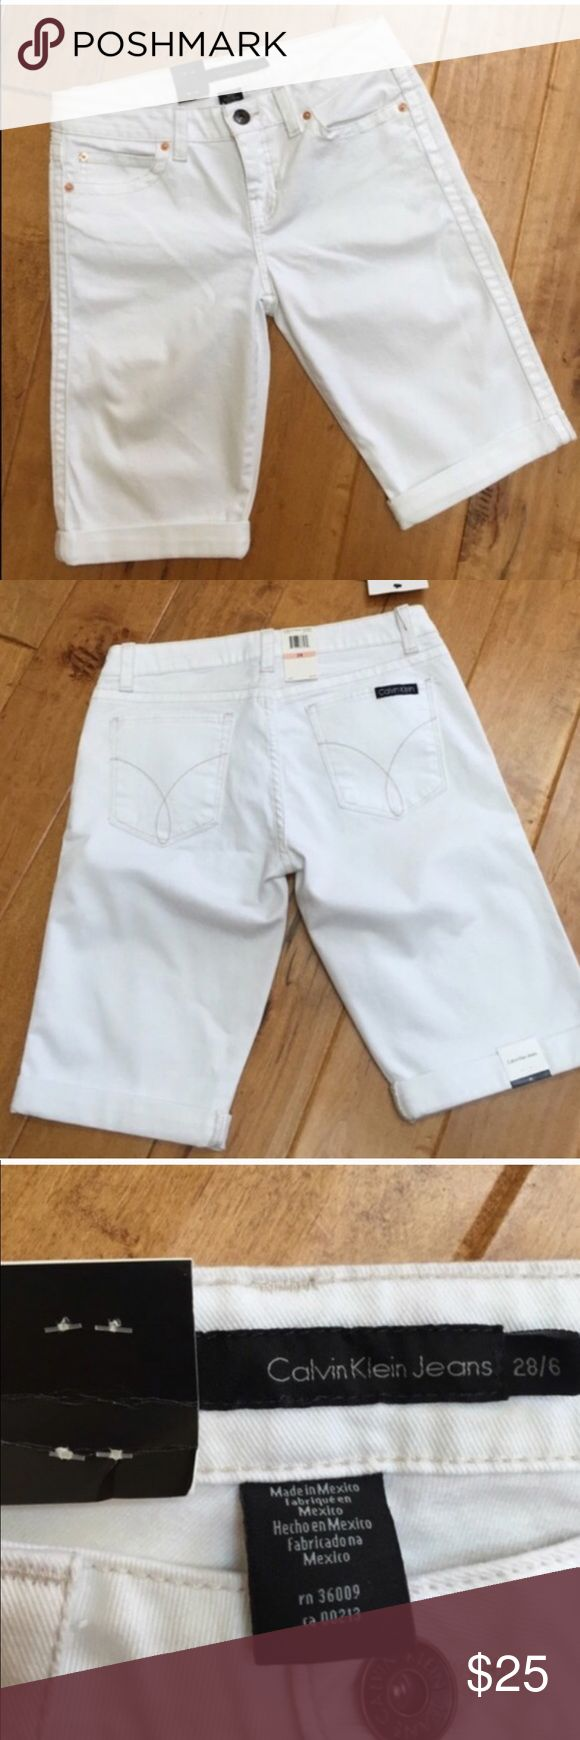 NWT Calvin Klein msrp $49.50 sz 28/6 fits like a 4 White Bermuda shorts NWT Calvin Klein Jeans msrp $49.50 size 28/6 but fits more like a 4 so I have not been able to wear these lovelies ! Springtime staple. Grab em!      NO LONGER FOR SALE. I gave item away to a friend 💕 Calvin Klein Shorts Bermudas